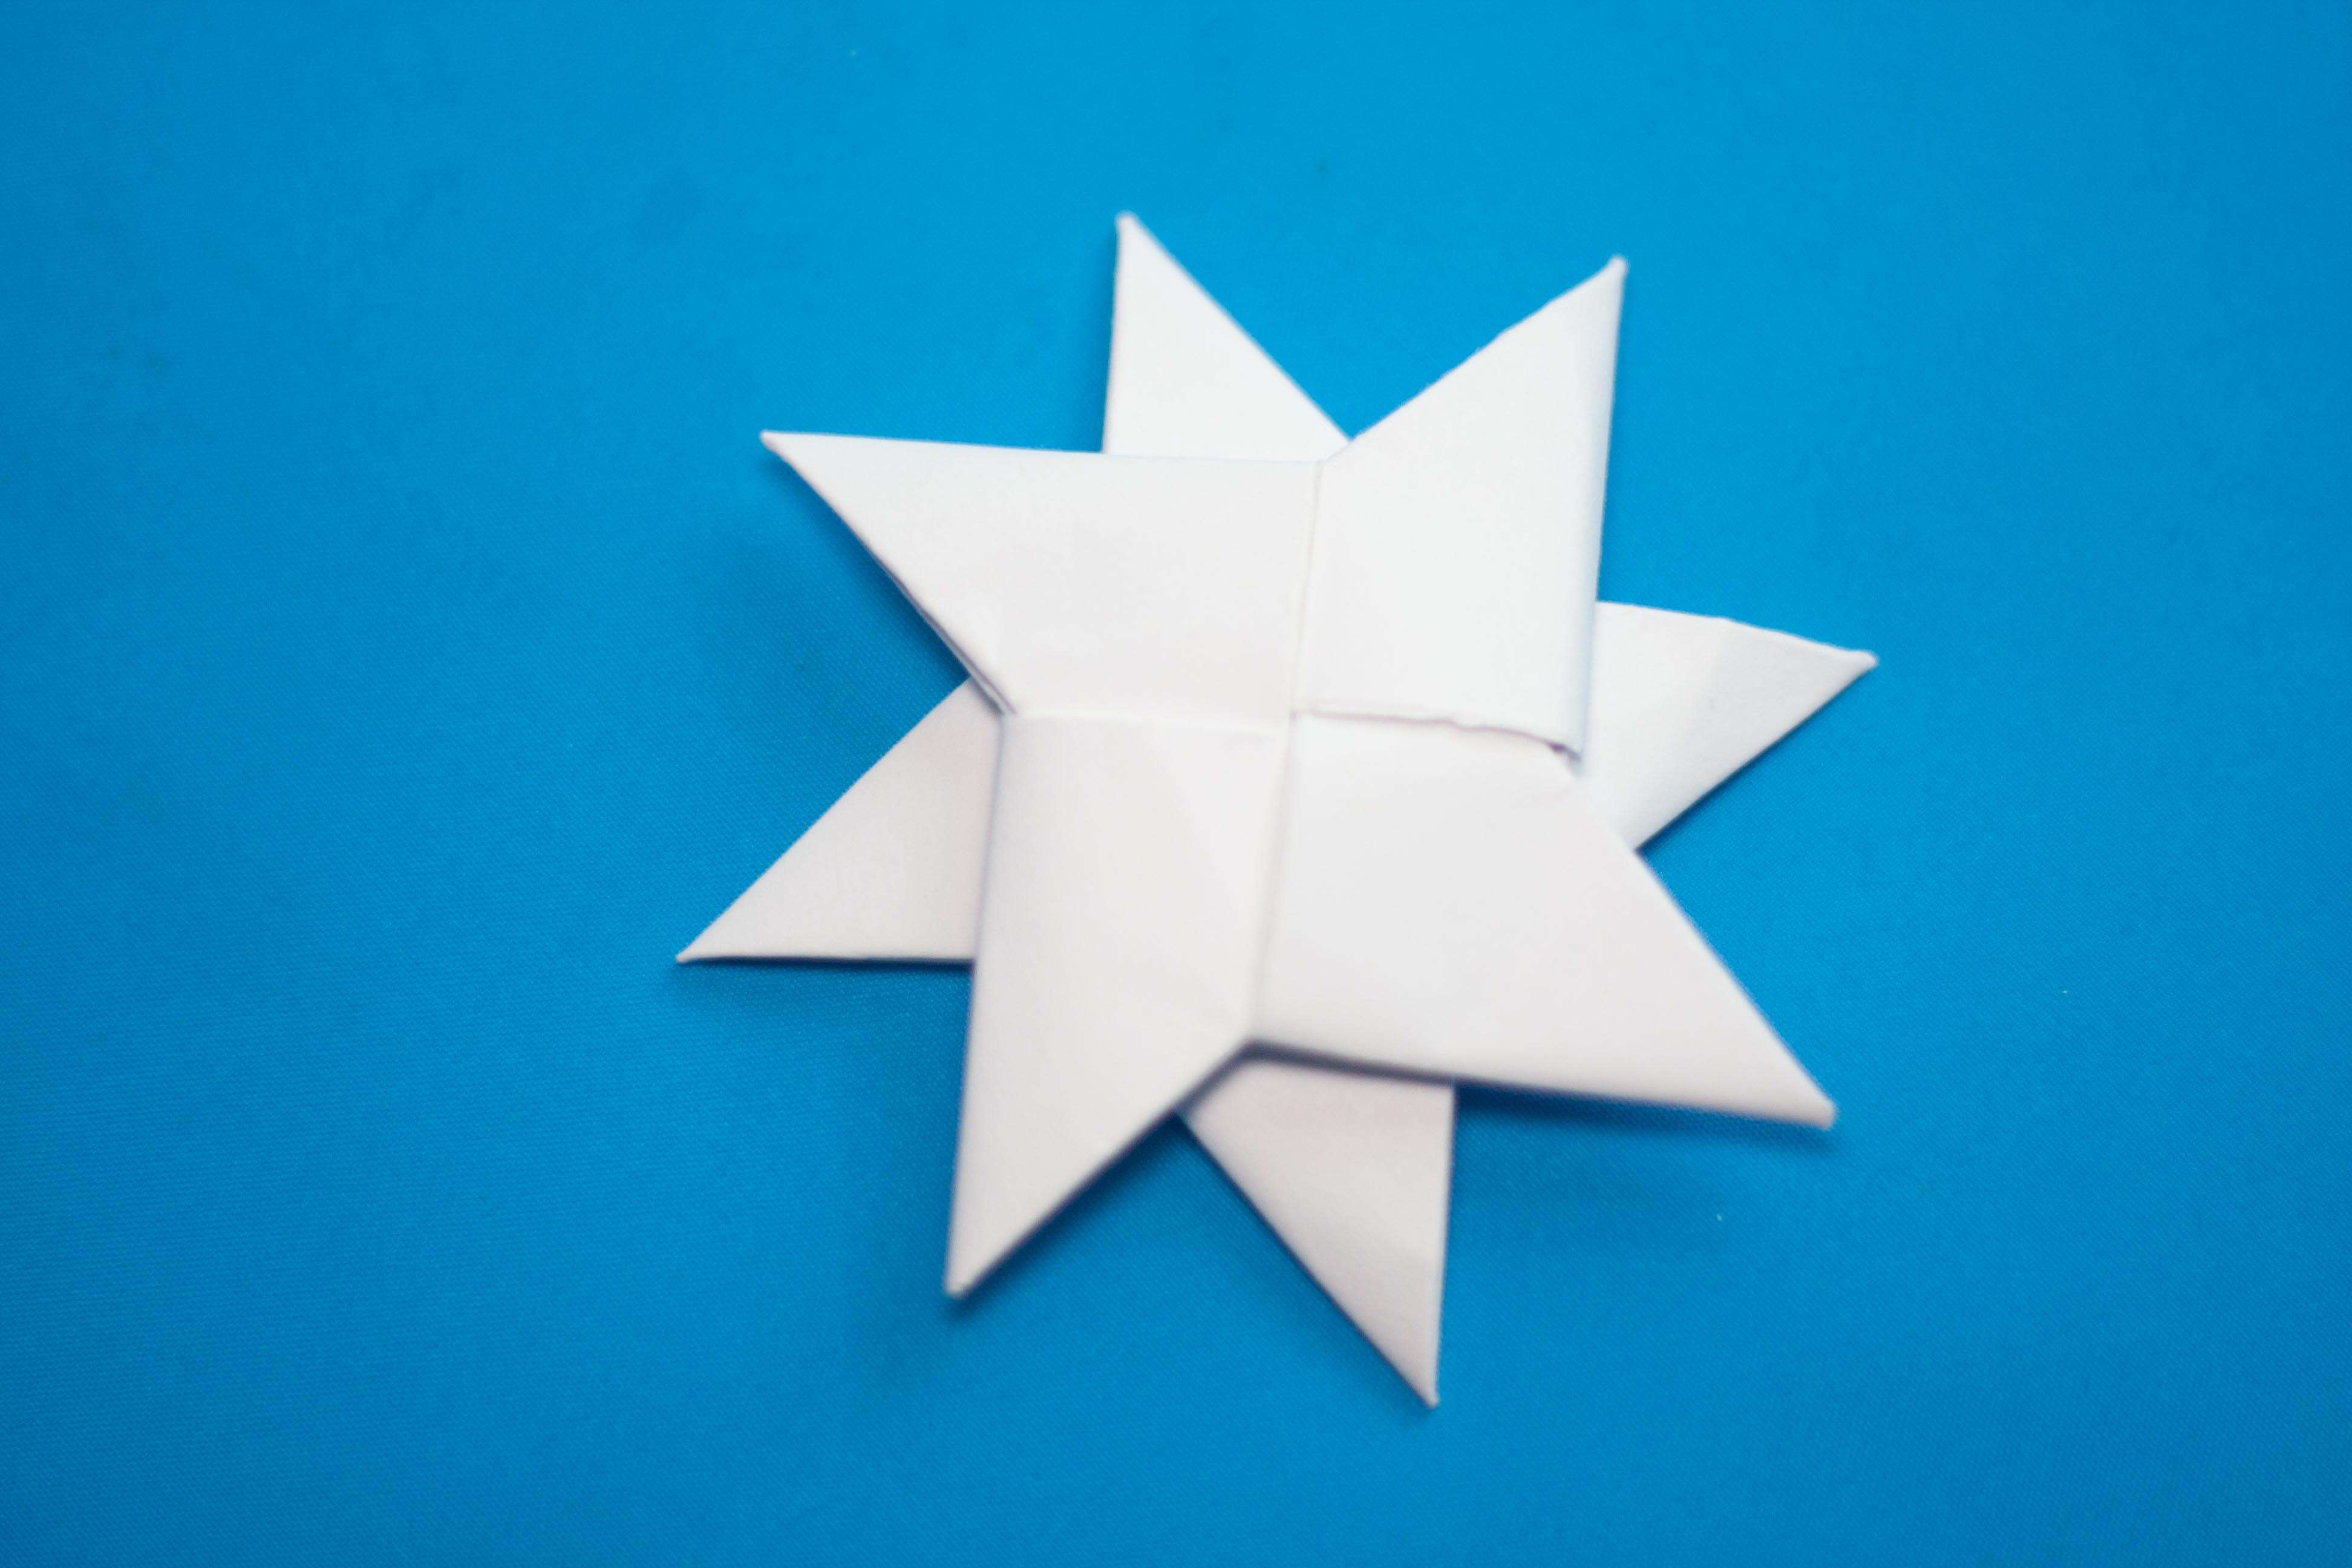 Make Paper Ninja Star Double Step